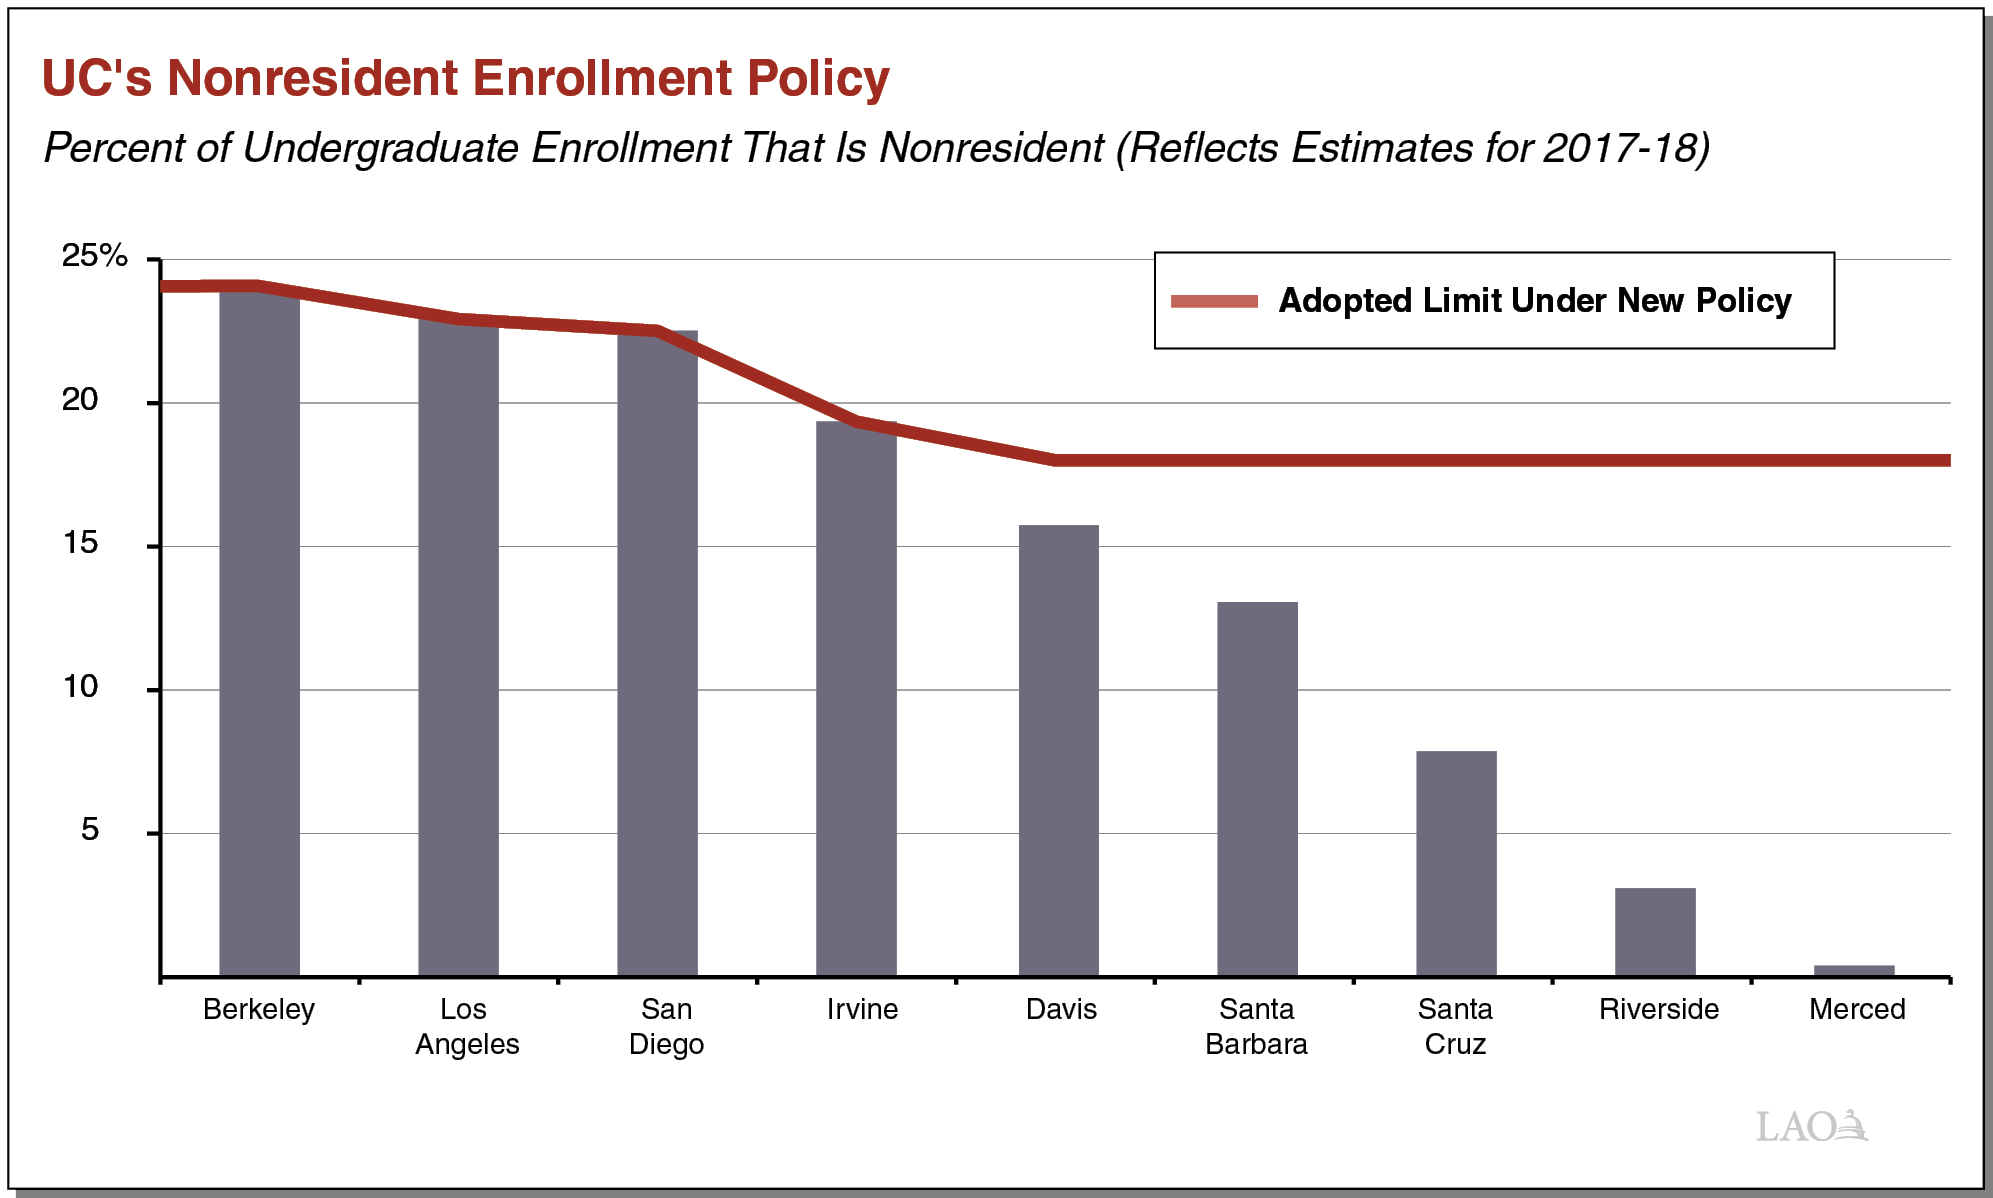 Figure for UC's Nonresident Enrollment Policy